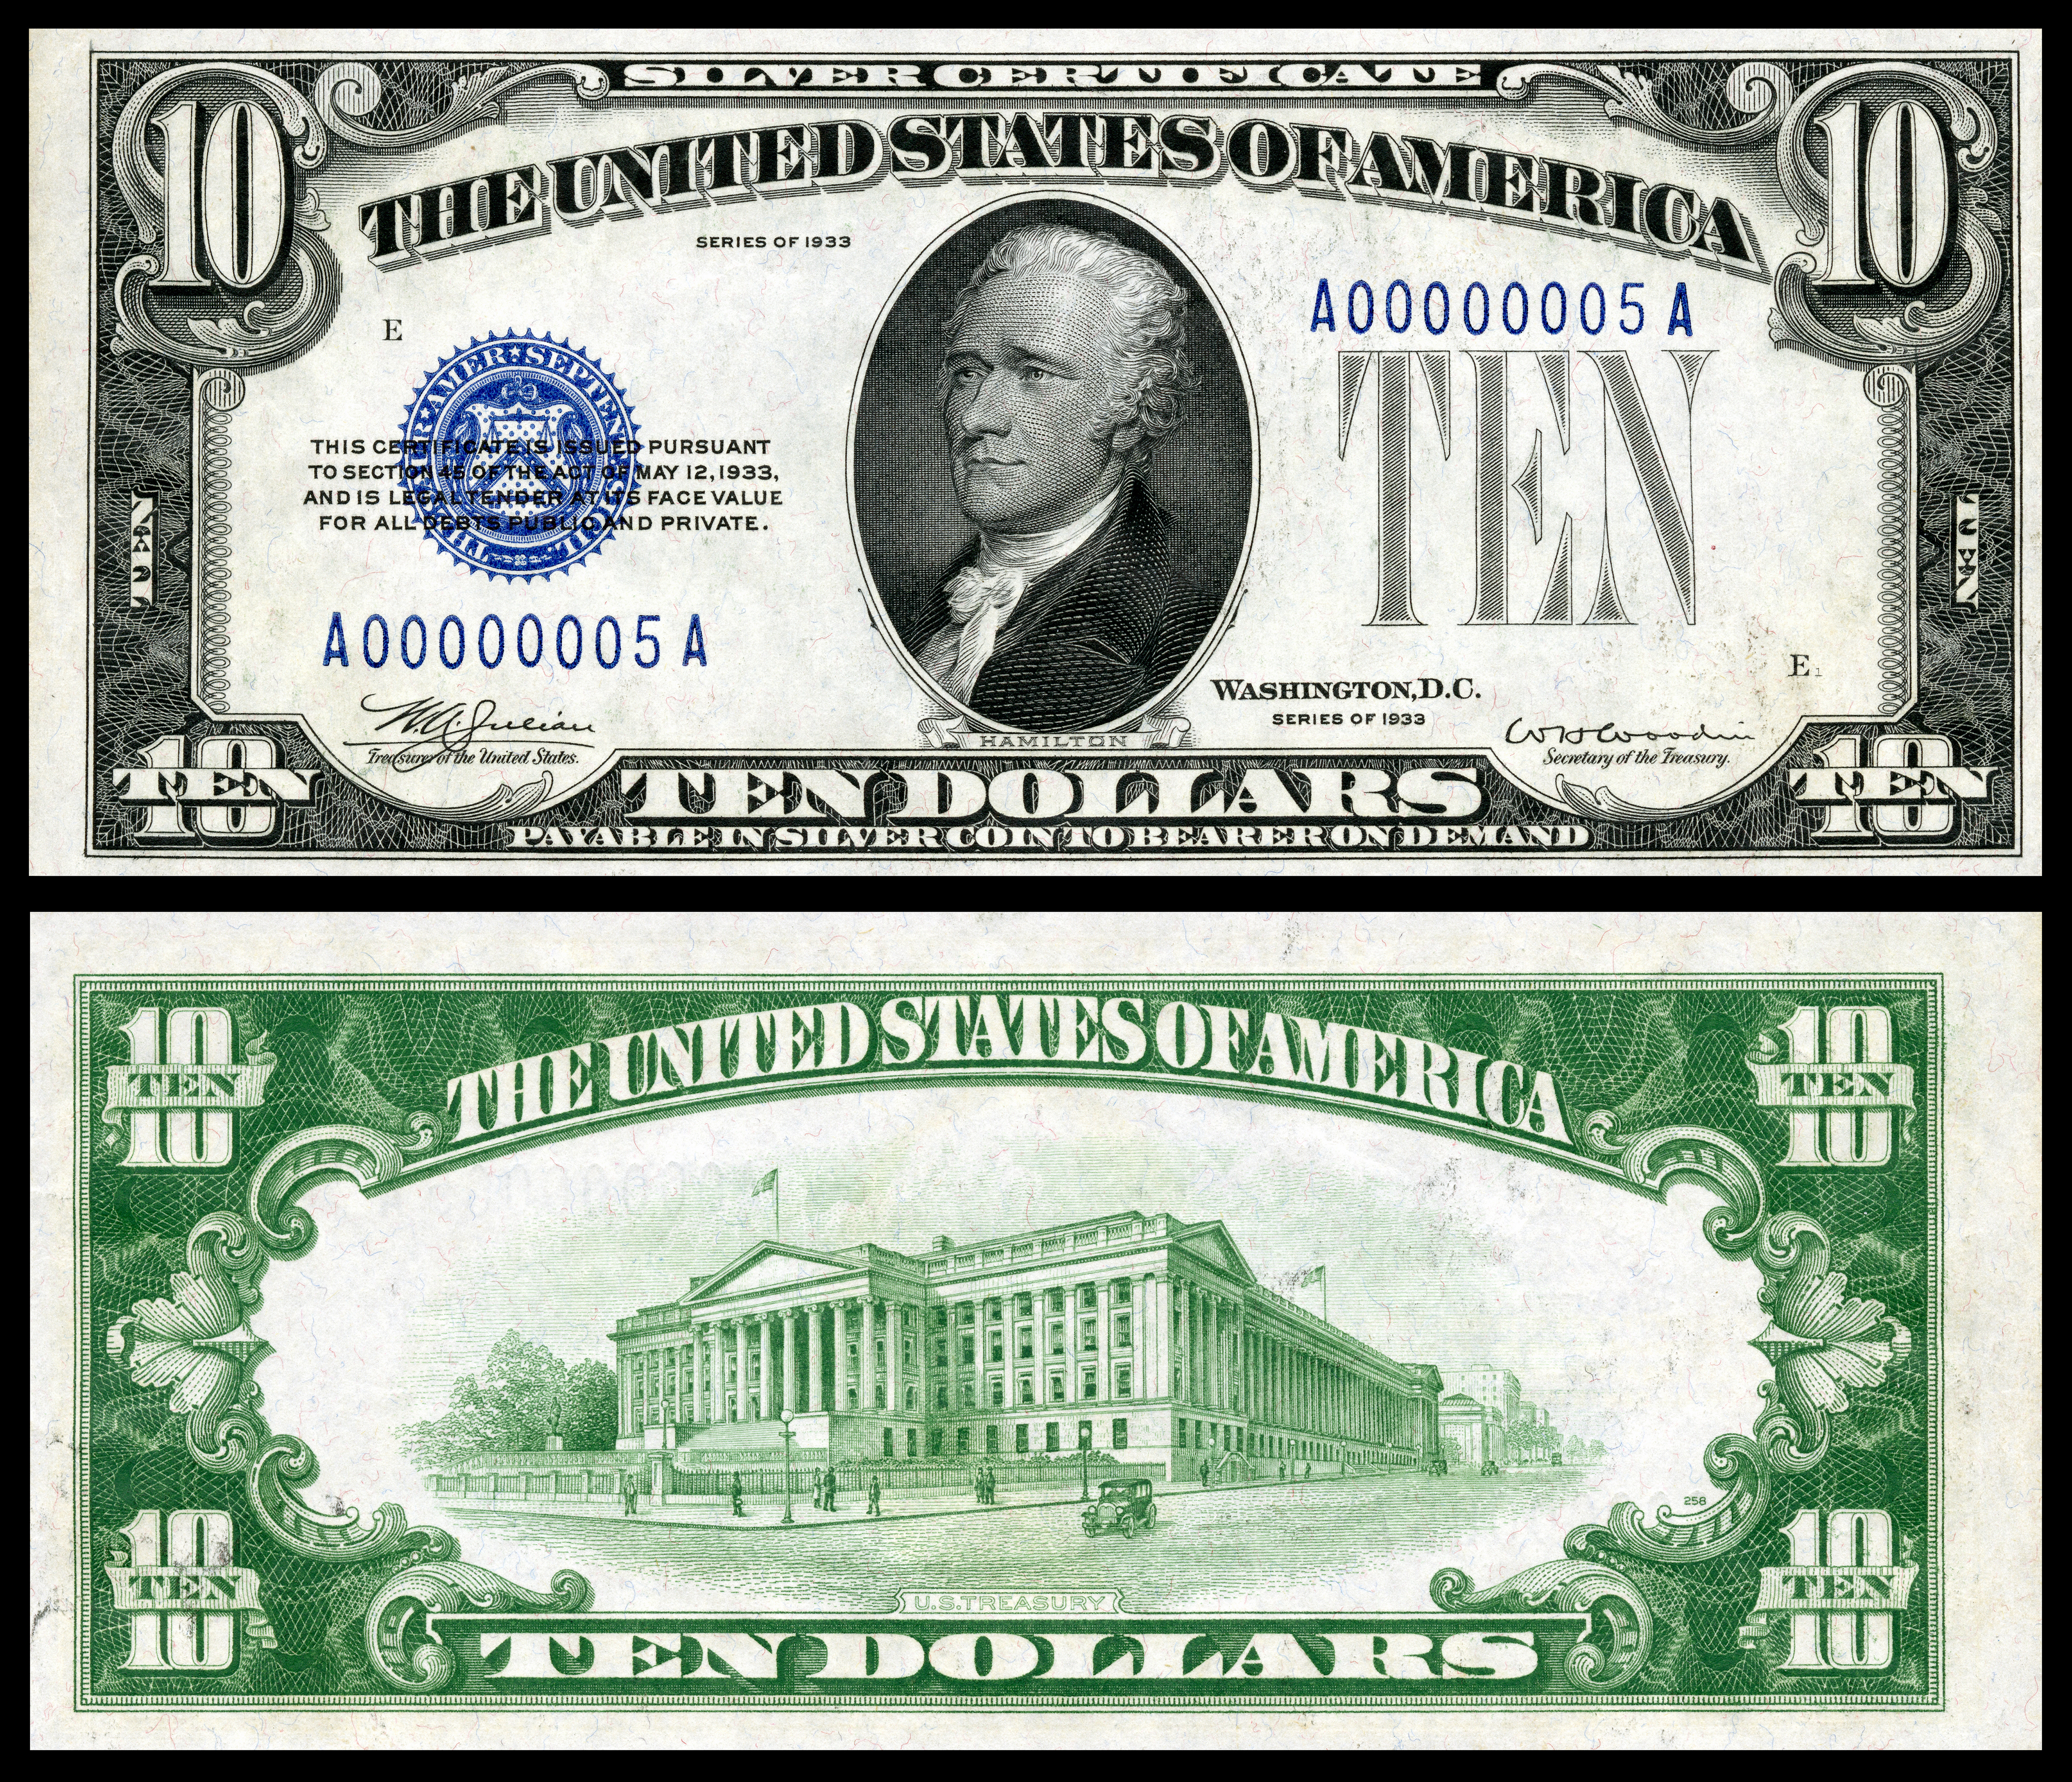 Silver certificate united states wikipedia 10 silver certificate series 1933 fr1700 depicting alexander hamilton 1betcityfo Images